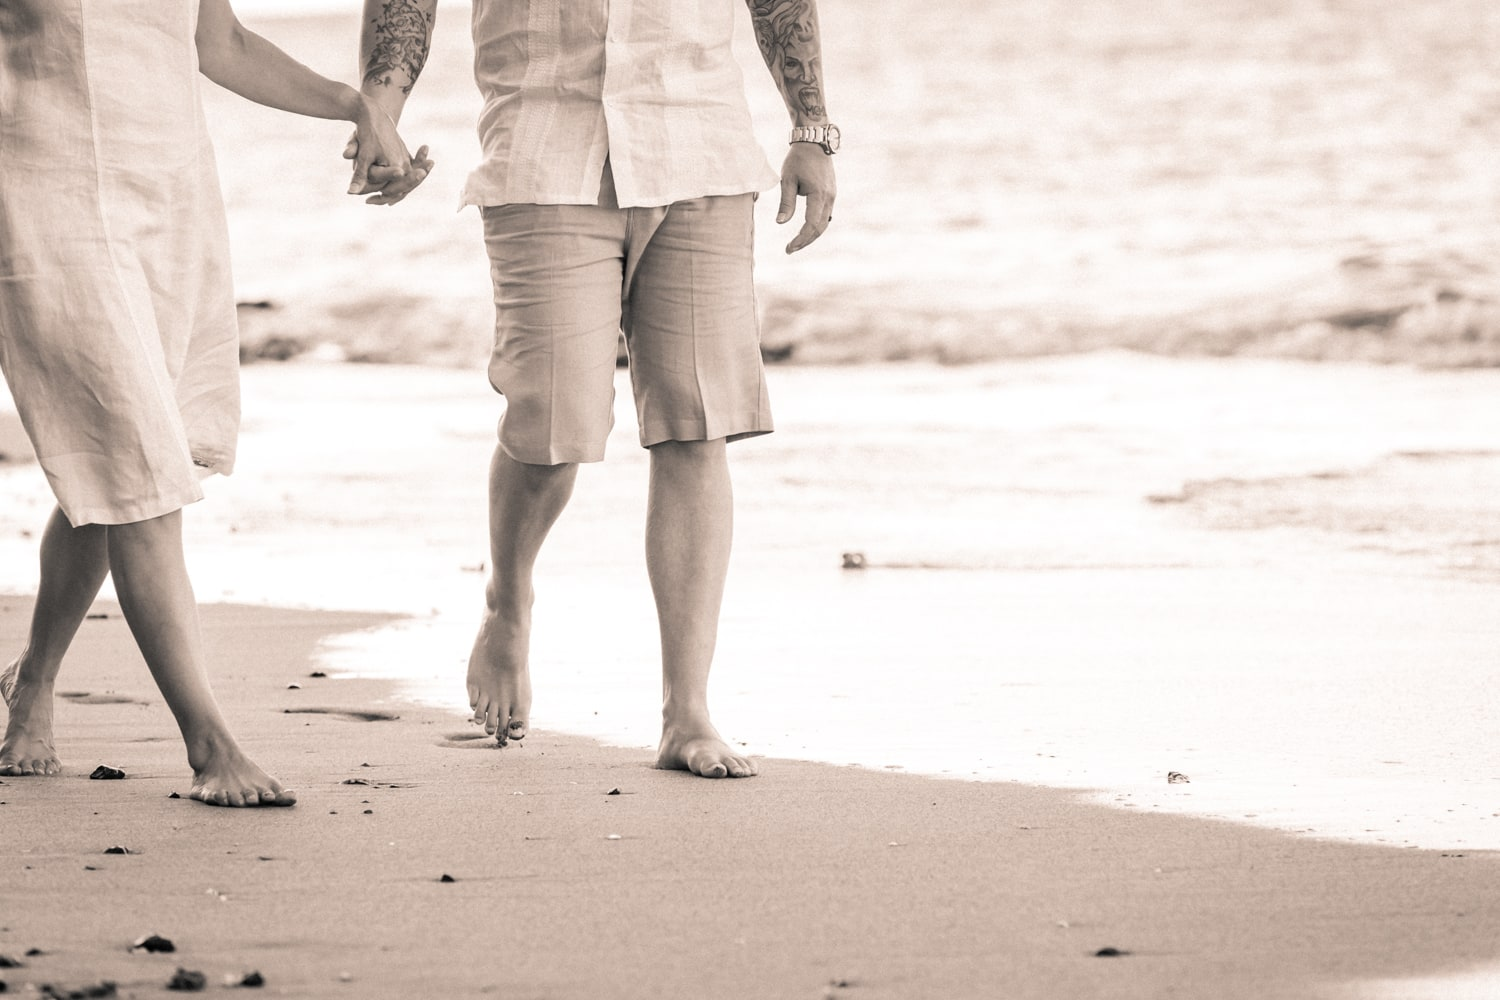 Just married couple walking on beach holding hands.